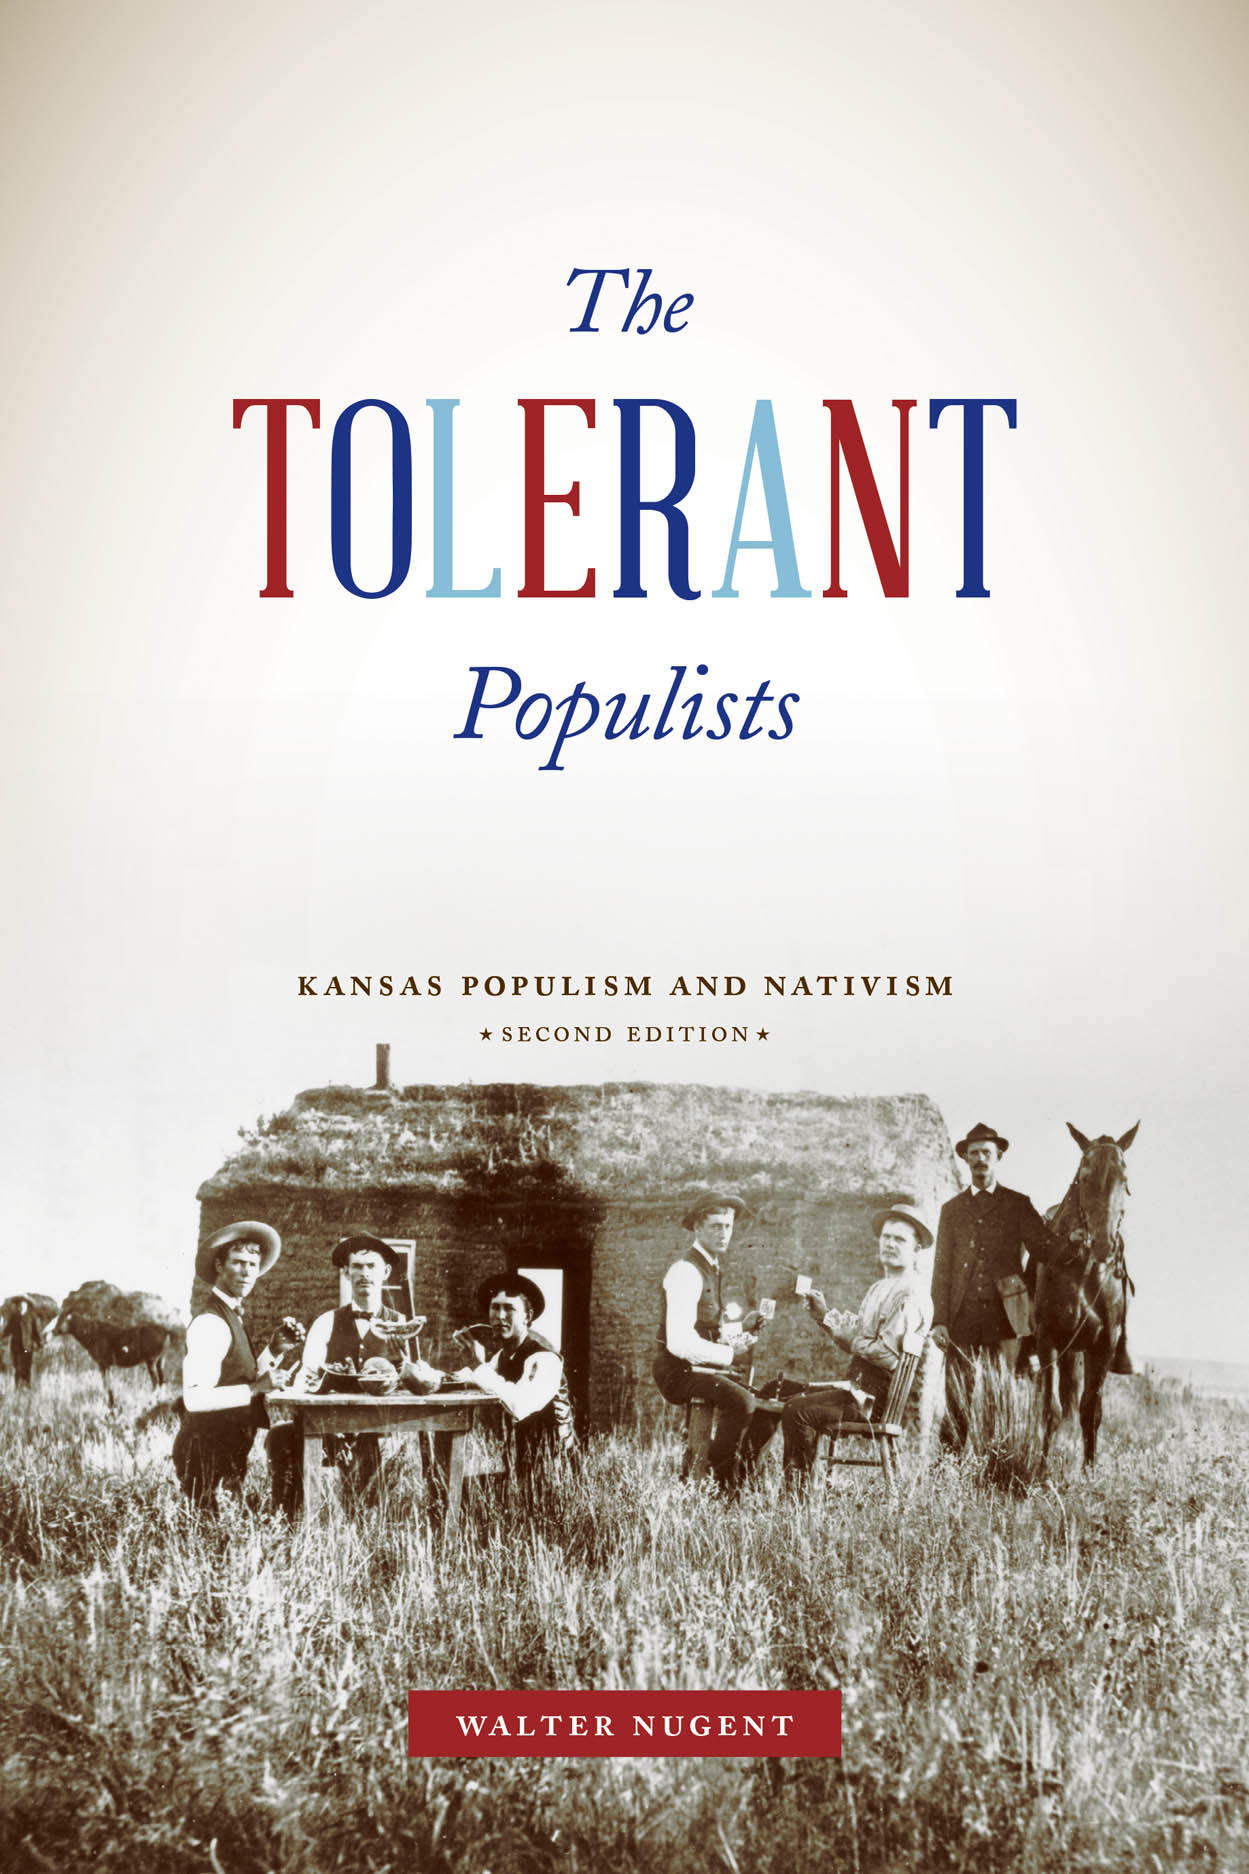 The Tolerant Populists, Second Edition: Kansas Populism and Nativism